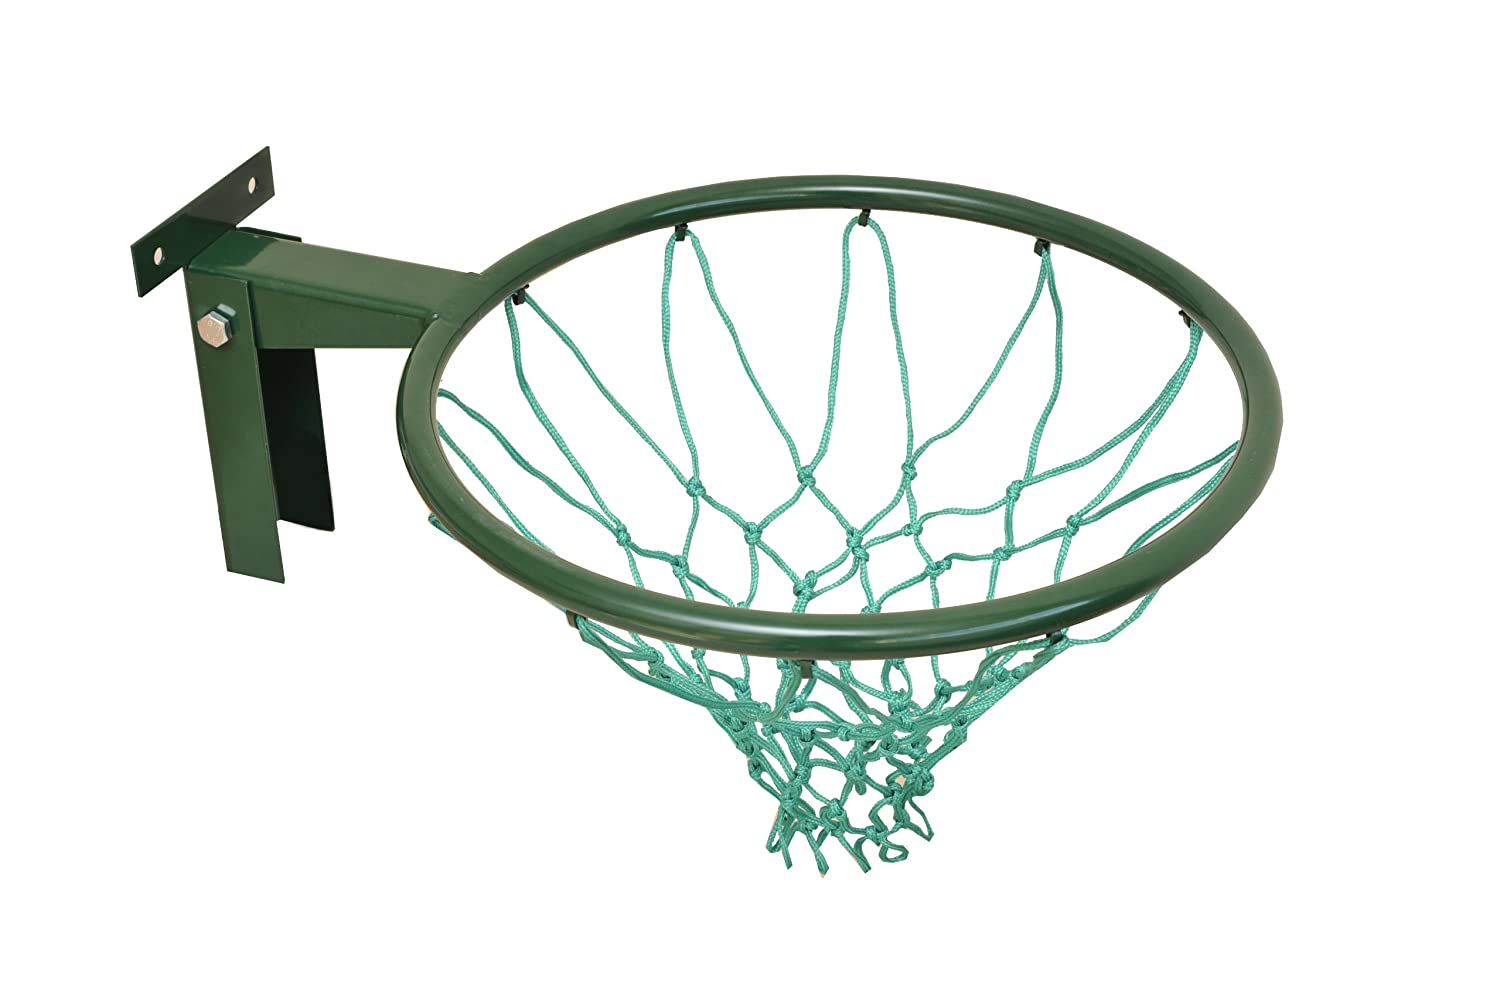 British Made Netball Ring from the Avonstar Classic Range (Robust Bracket, 2 years warranty) made in Britain. With top quality 3mm twine net. Avonstar Trading co. ltd. 101